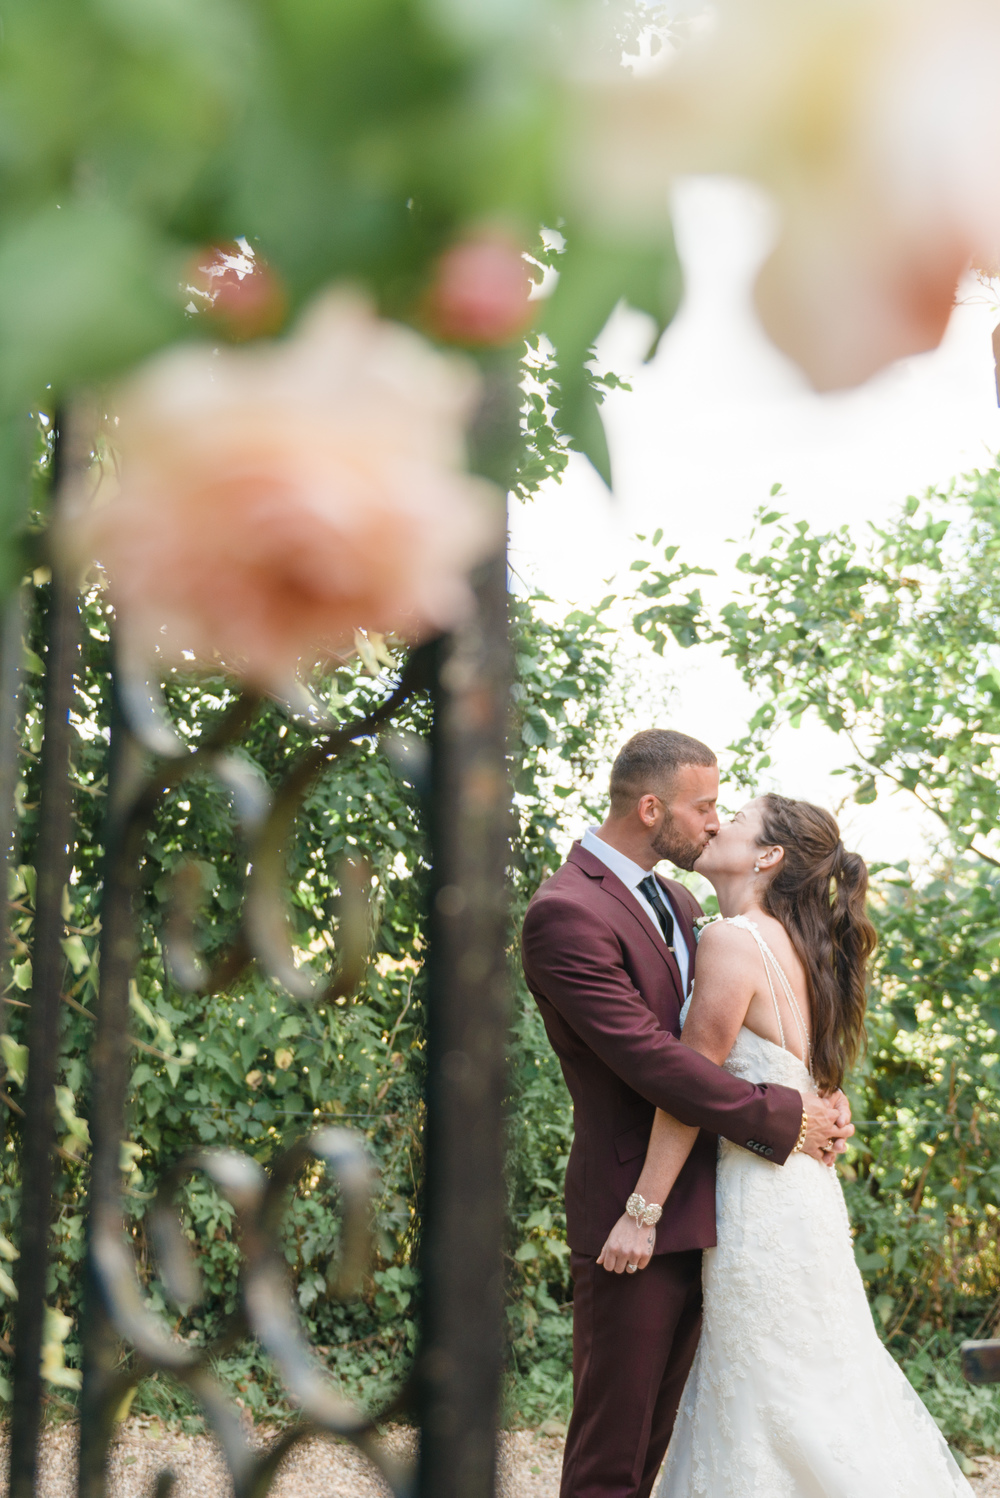 hannah-mcclune-photography-mill-house-hotel-swallowfield-rustic-wedding-burgundy-and-peach-wedding-47